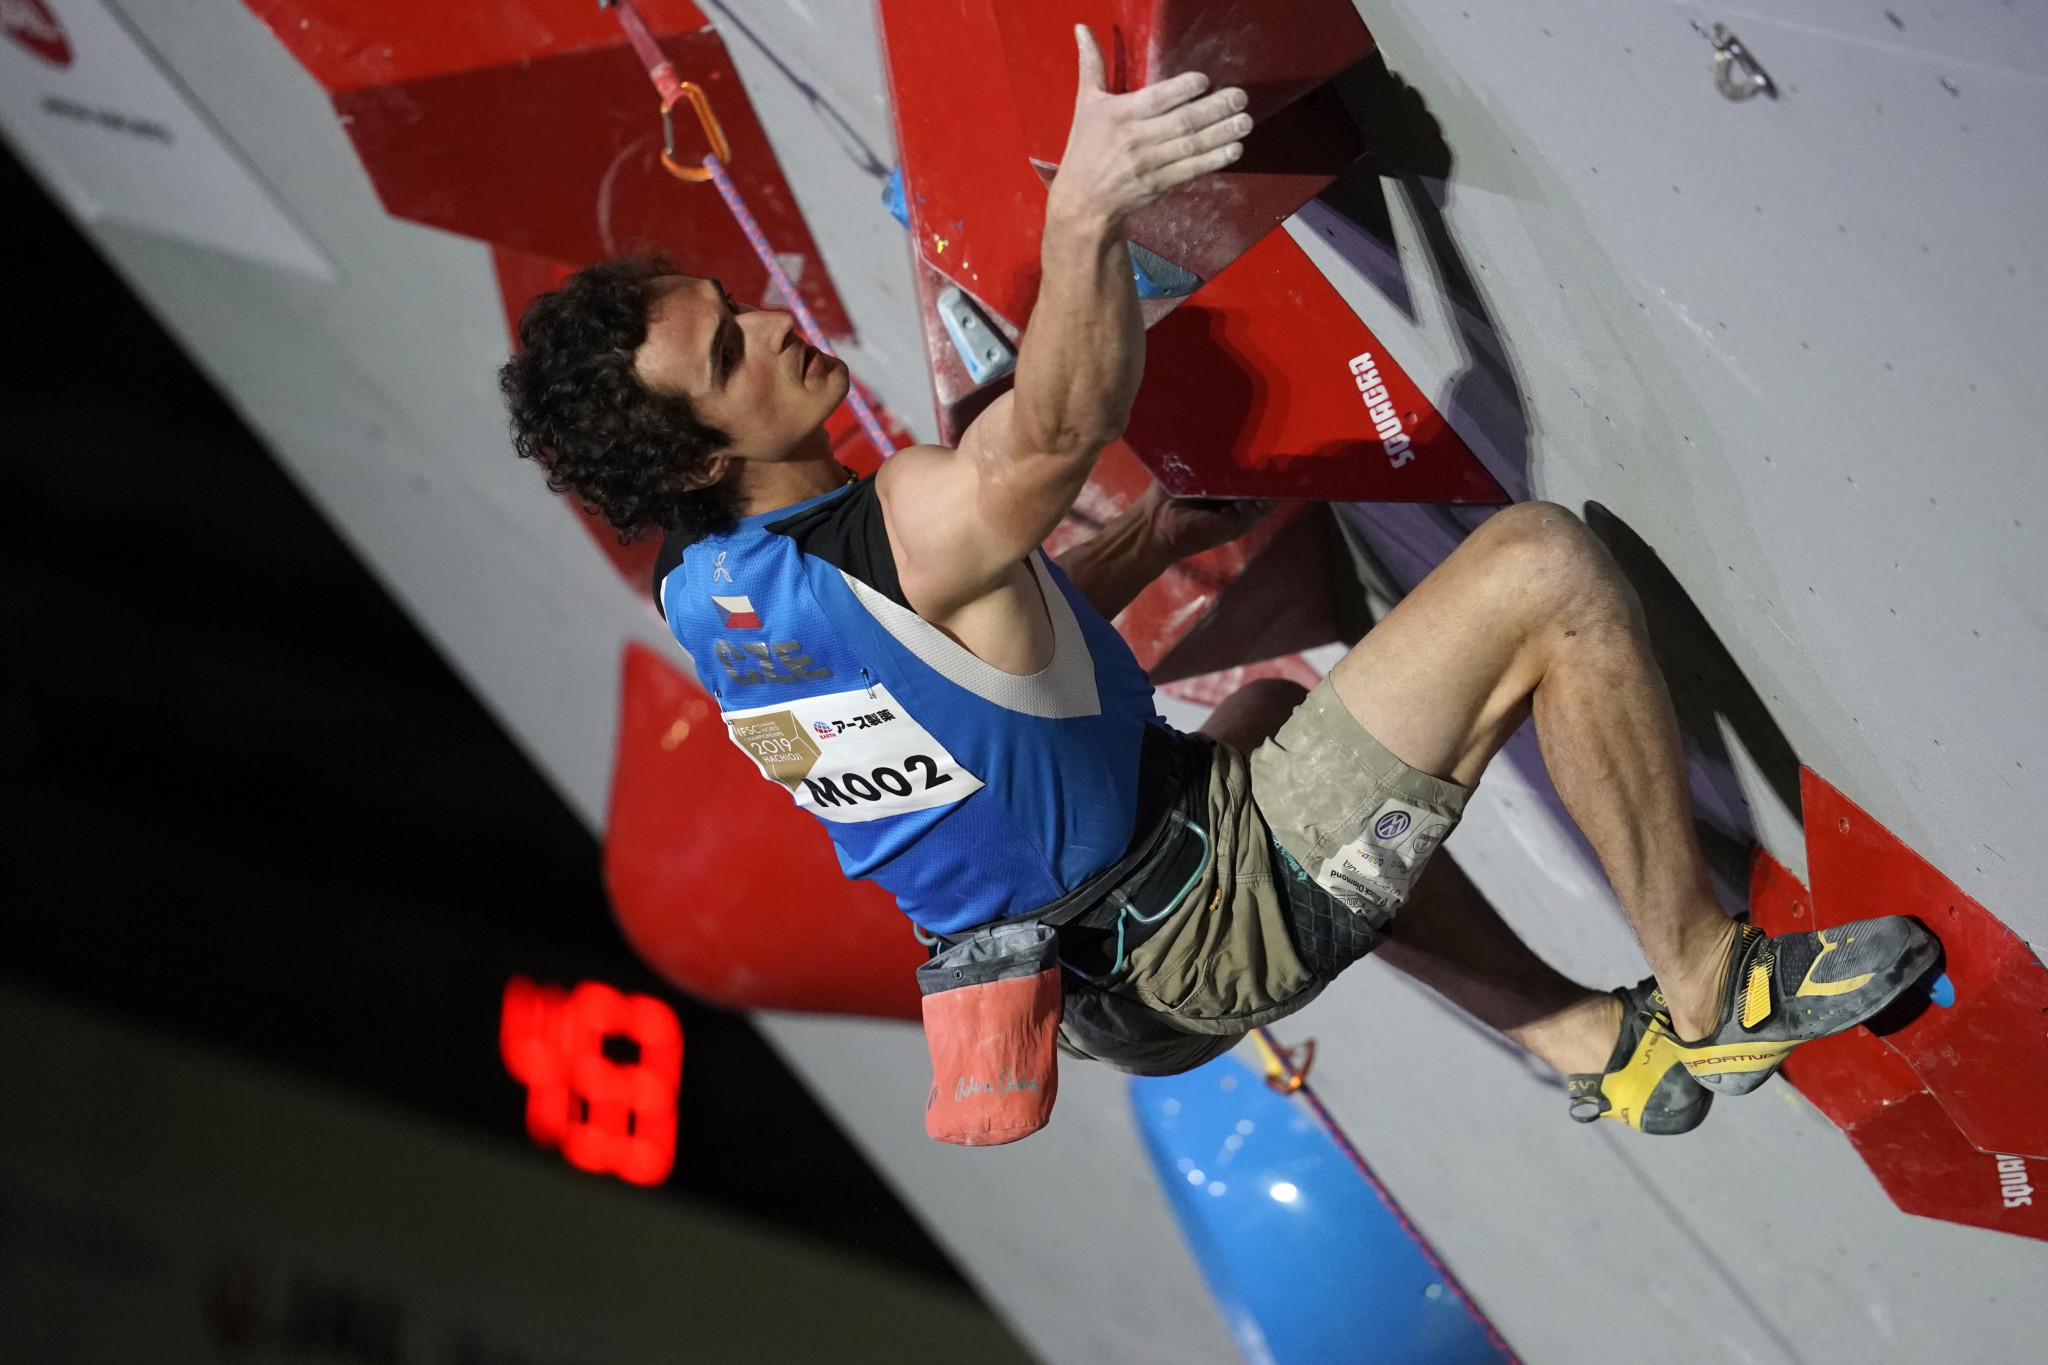 Newly-crowned men's lead world champion, Czech Republic's Adam Ondra, is due to be back in action in Kranj ©Getty Images